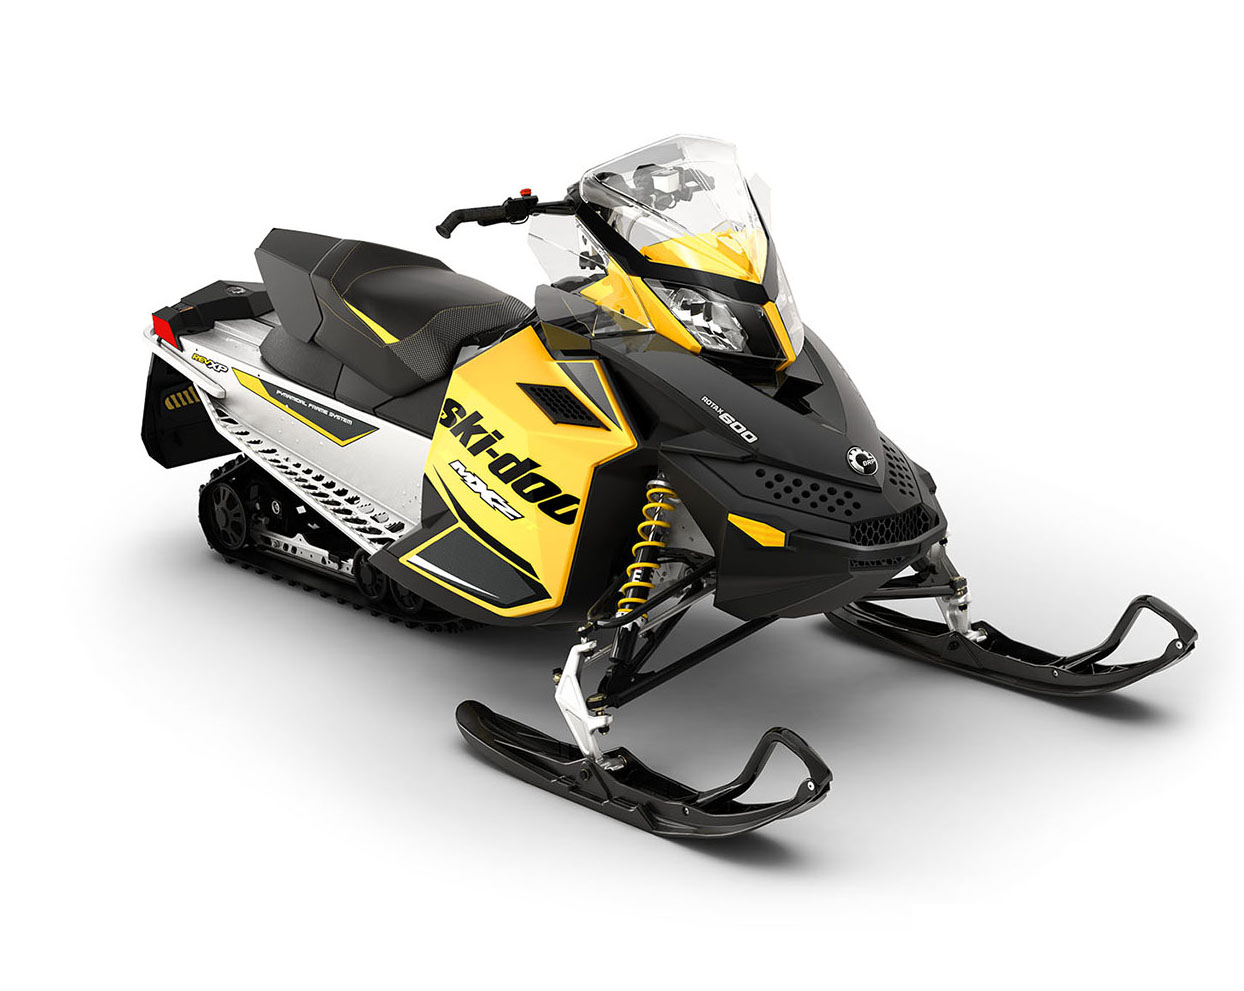 2013 Ski Doo 600 performance